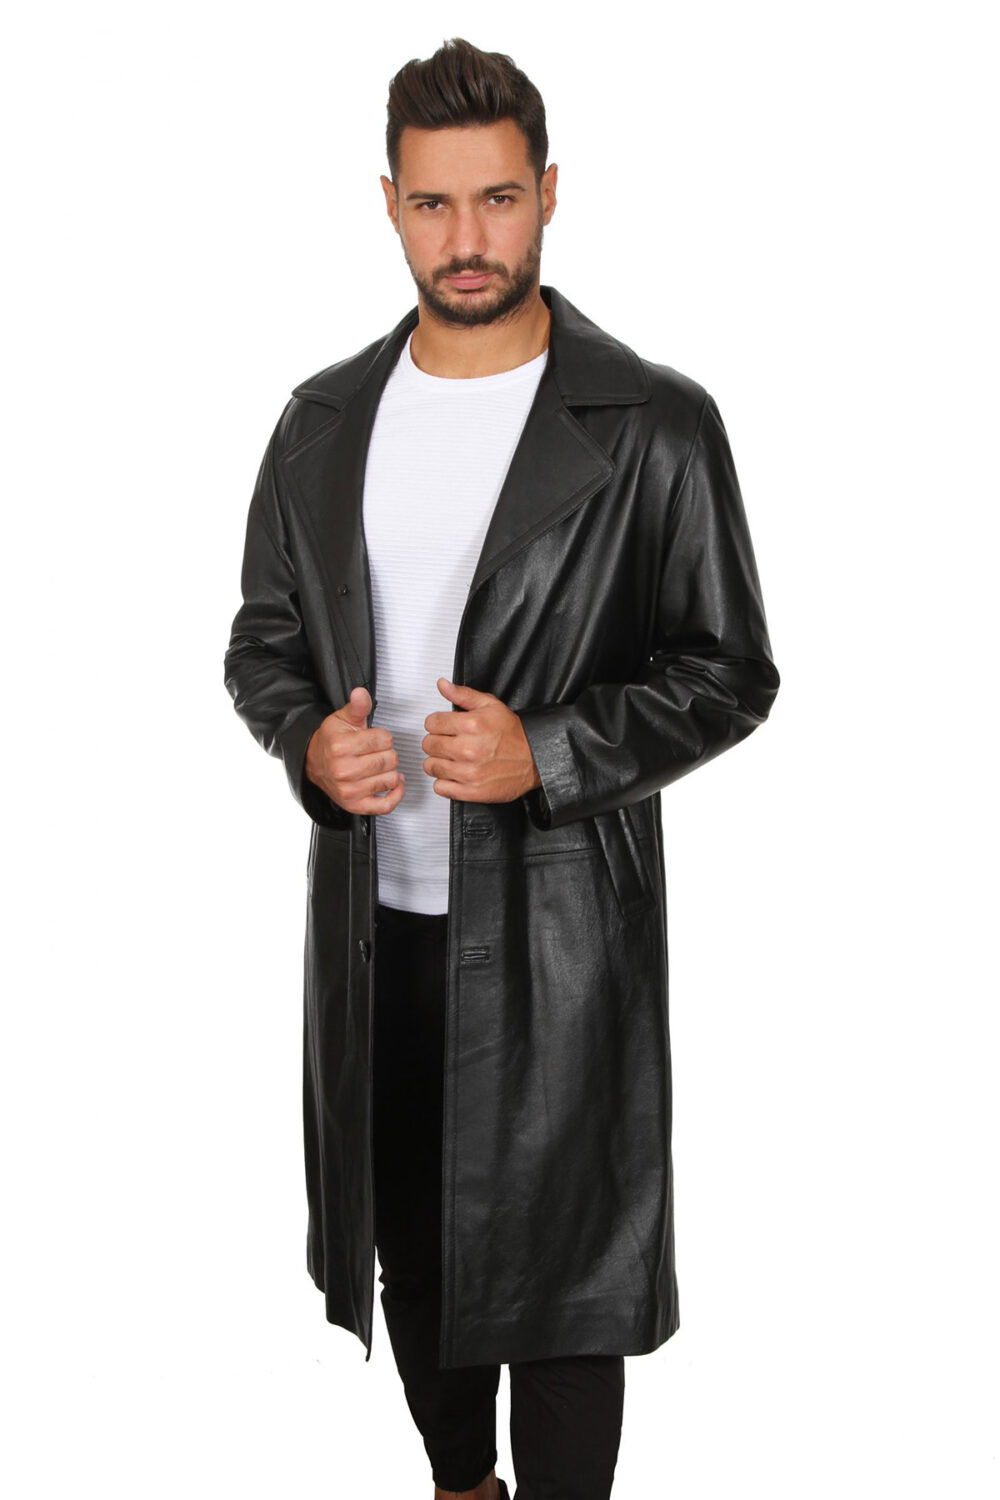 Alfred Dunhill Leather Jacket